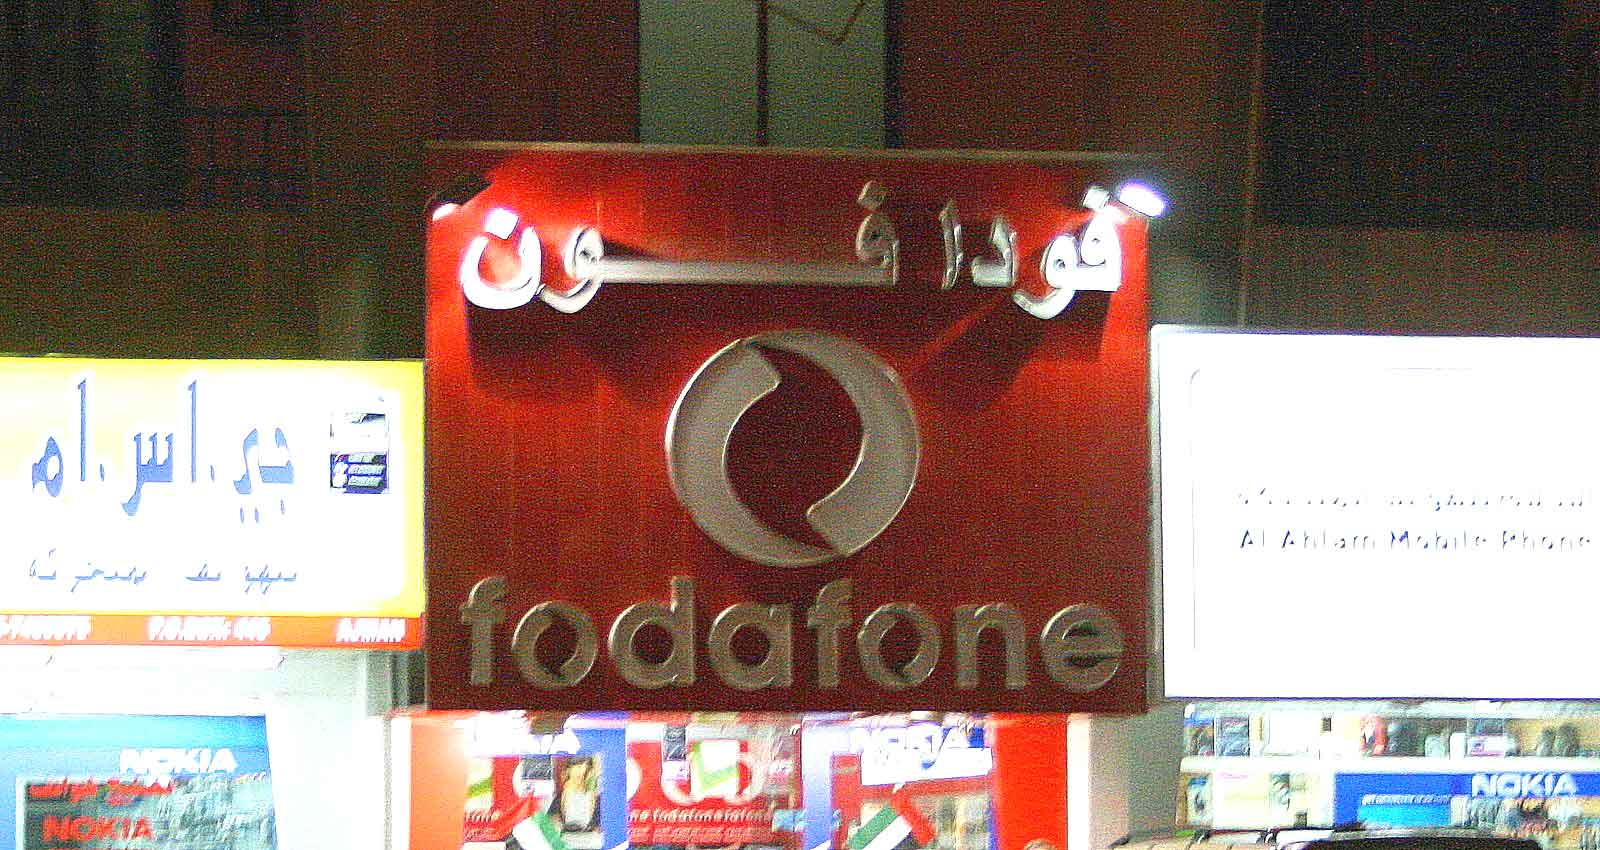 A mobile phone reseller in Abu Dhabi